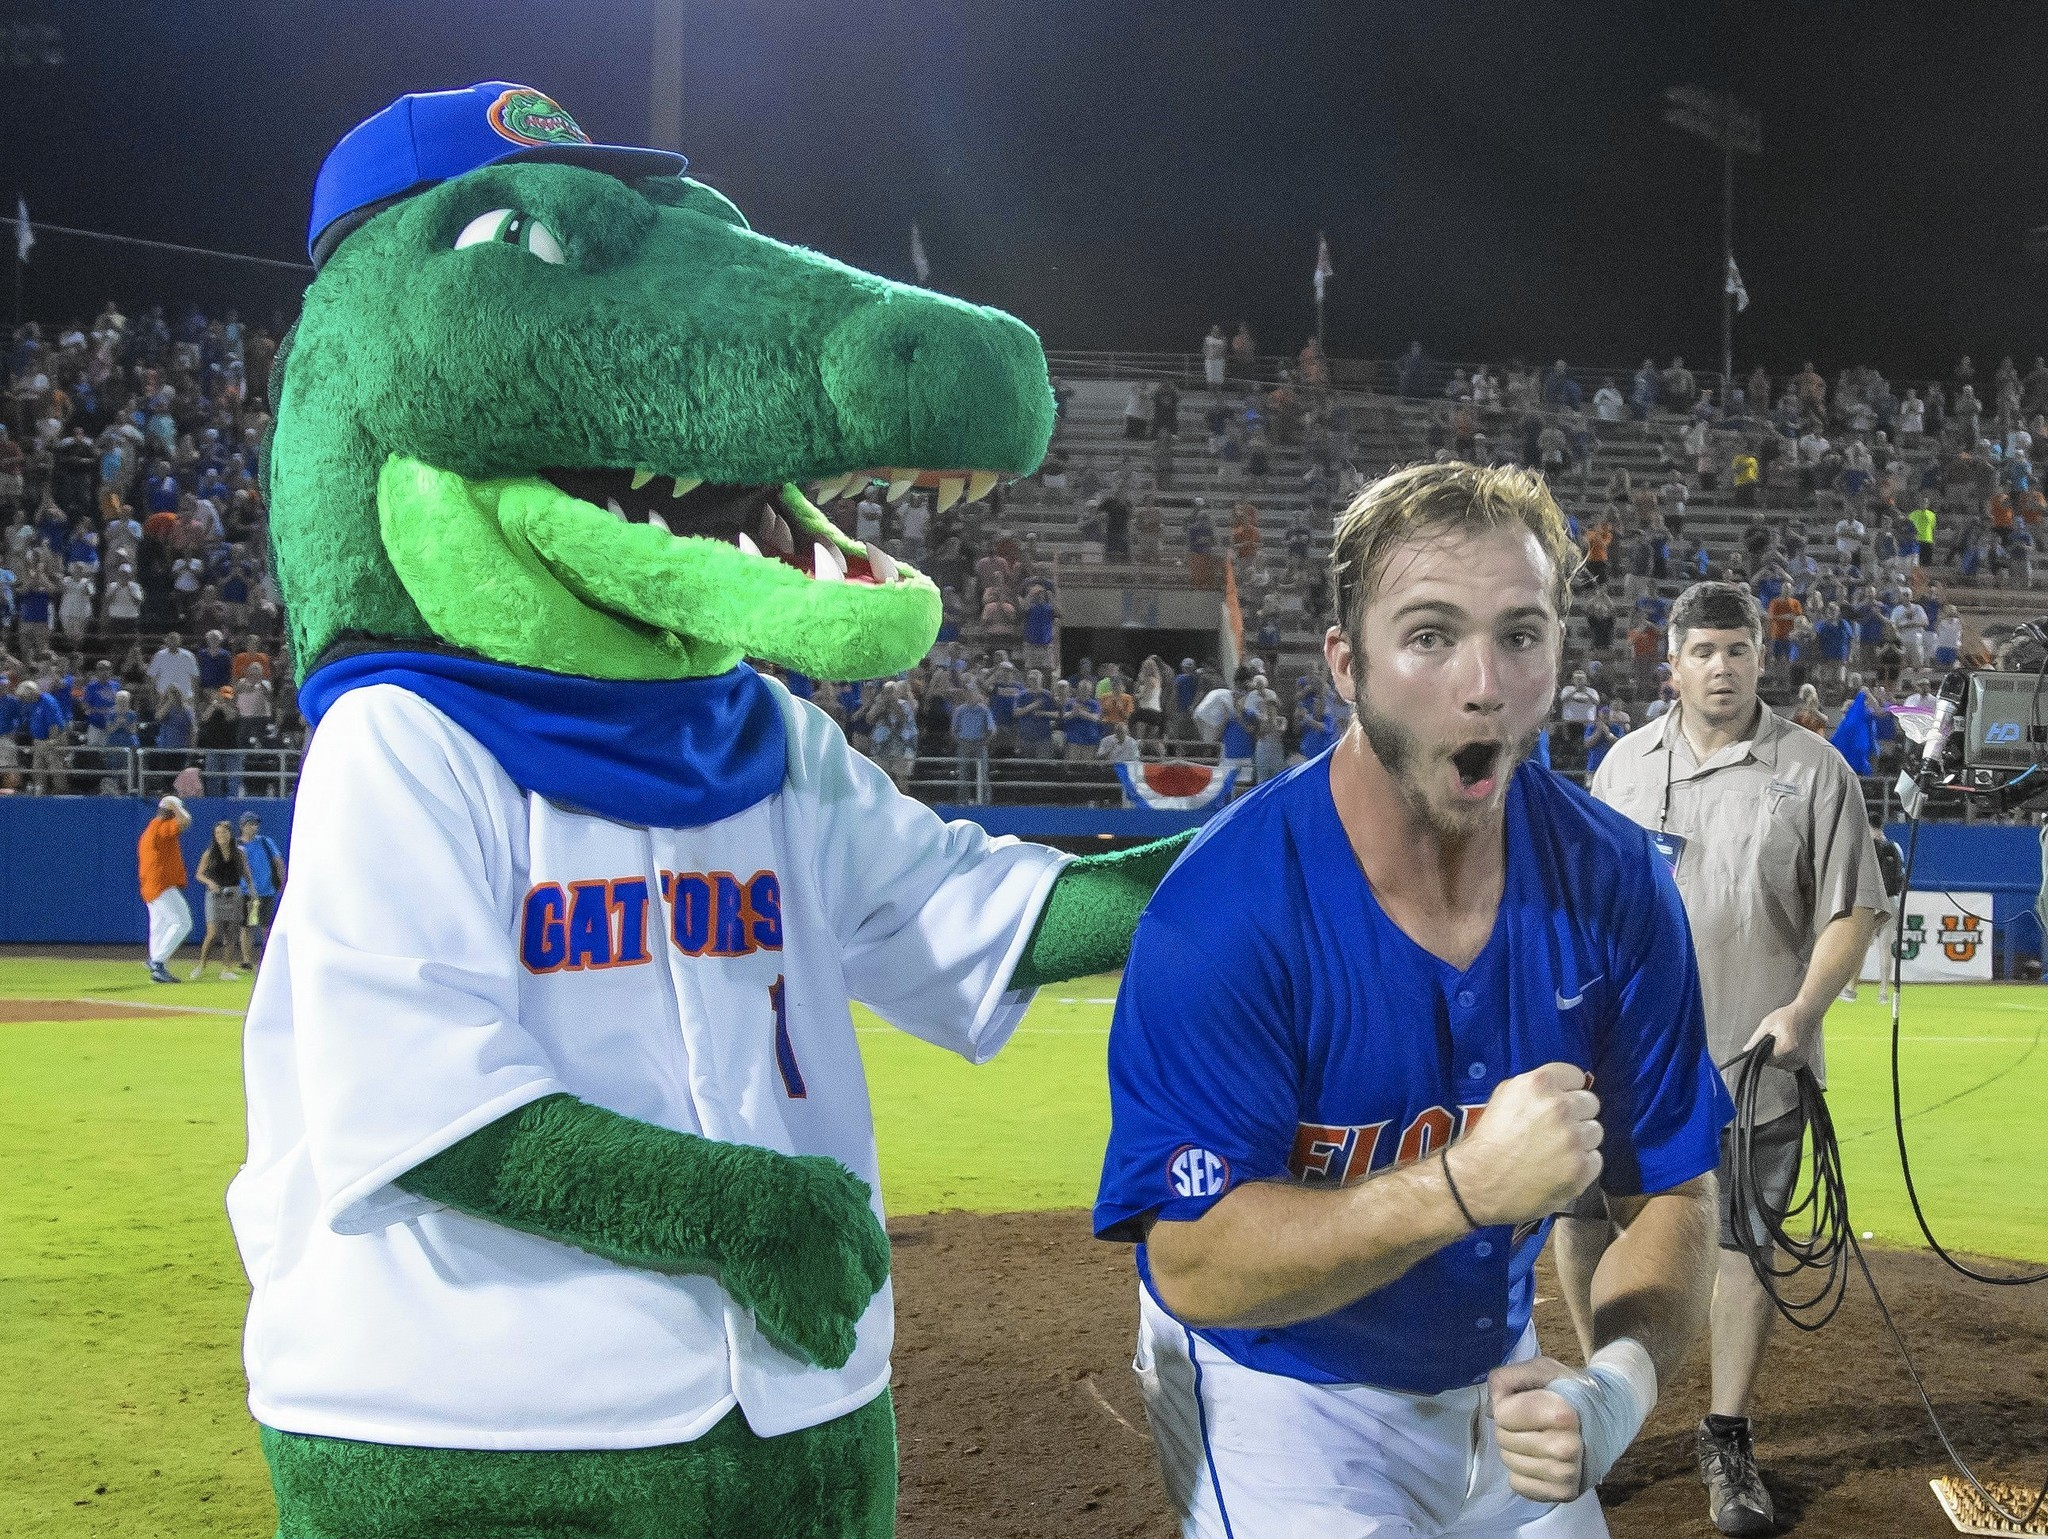 Os-gators-cws-college-baseball-0616-20160615